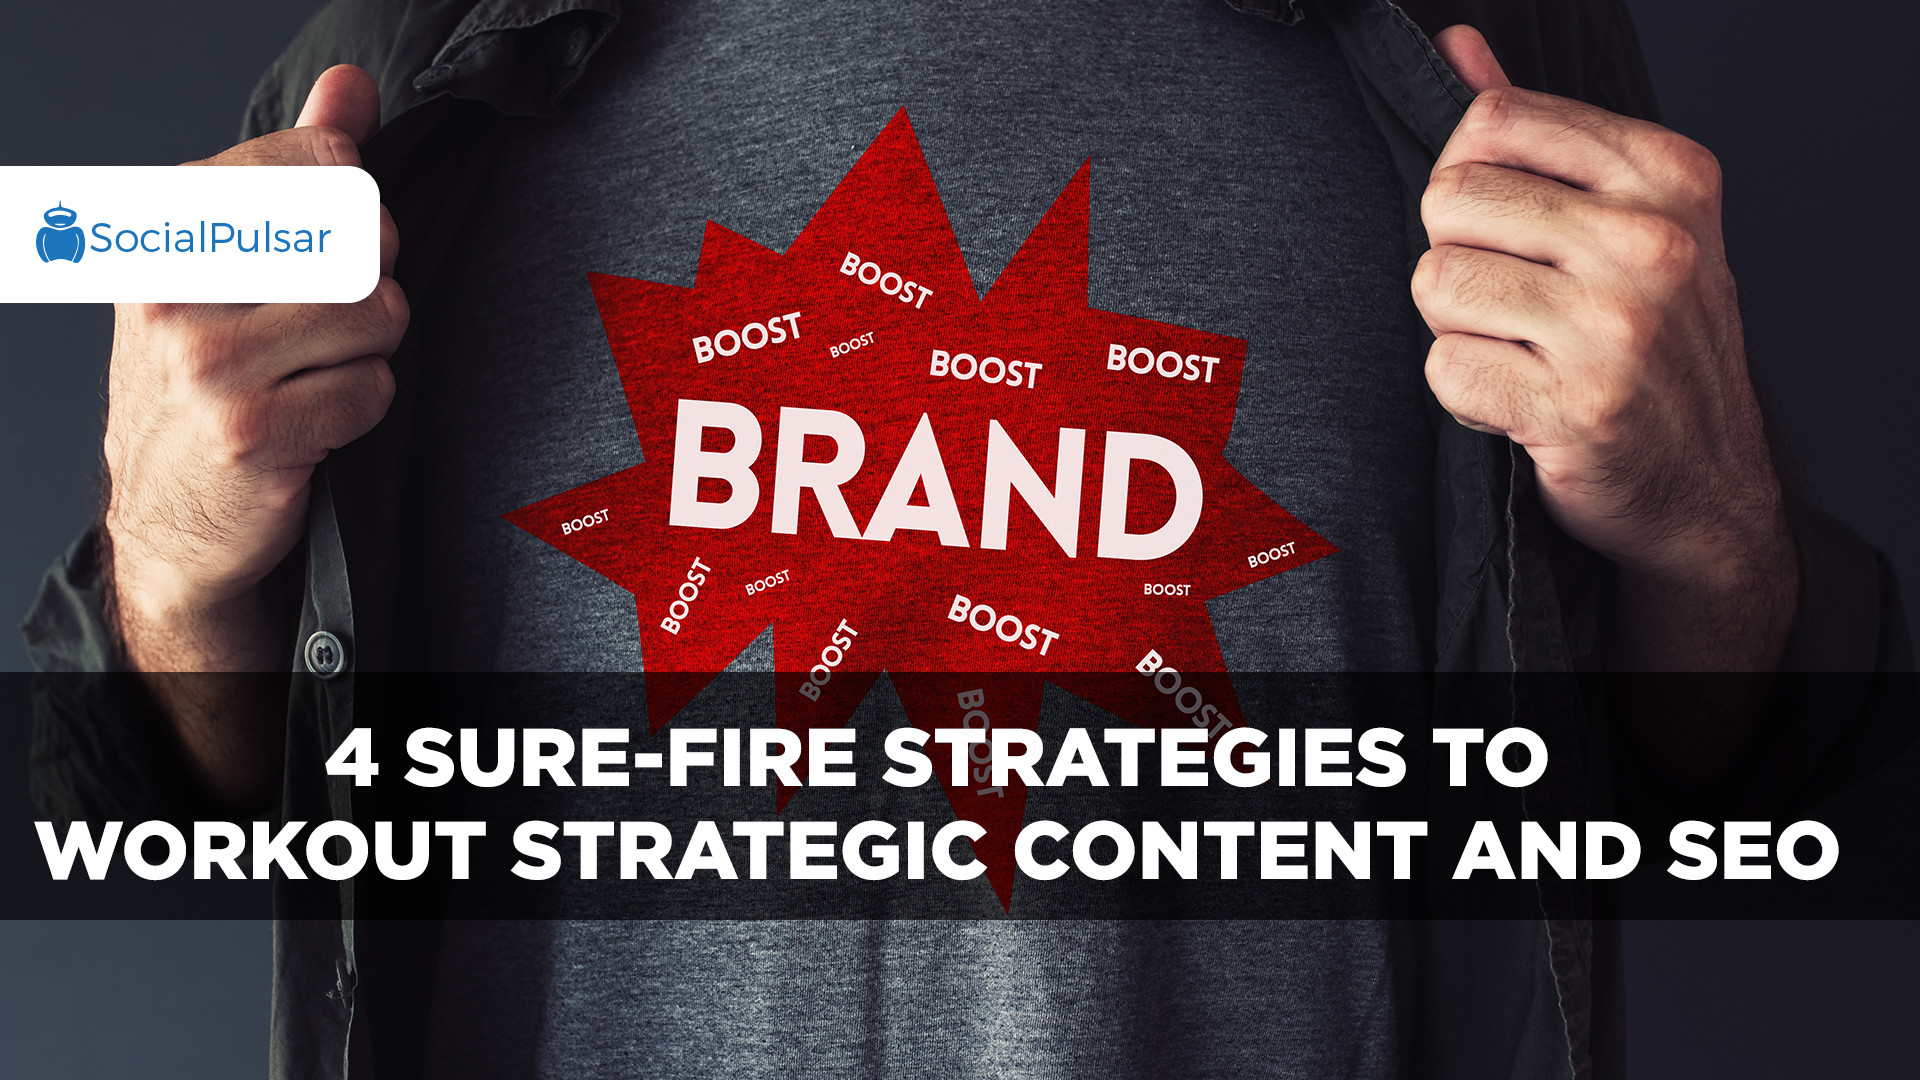 4 Sure-Fire Strategies to Workout Strategic Content and SEO